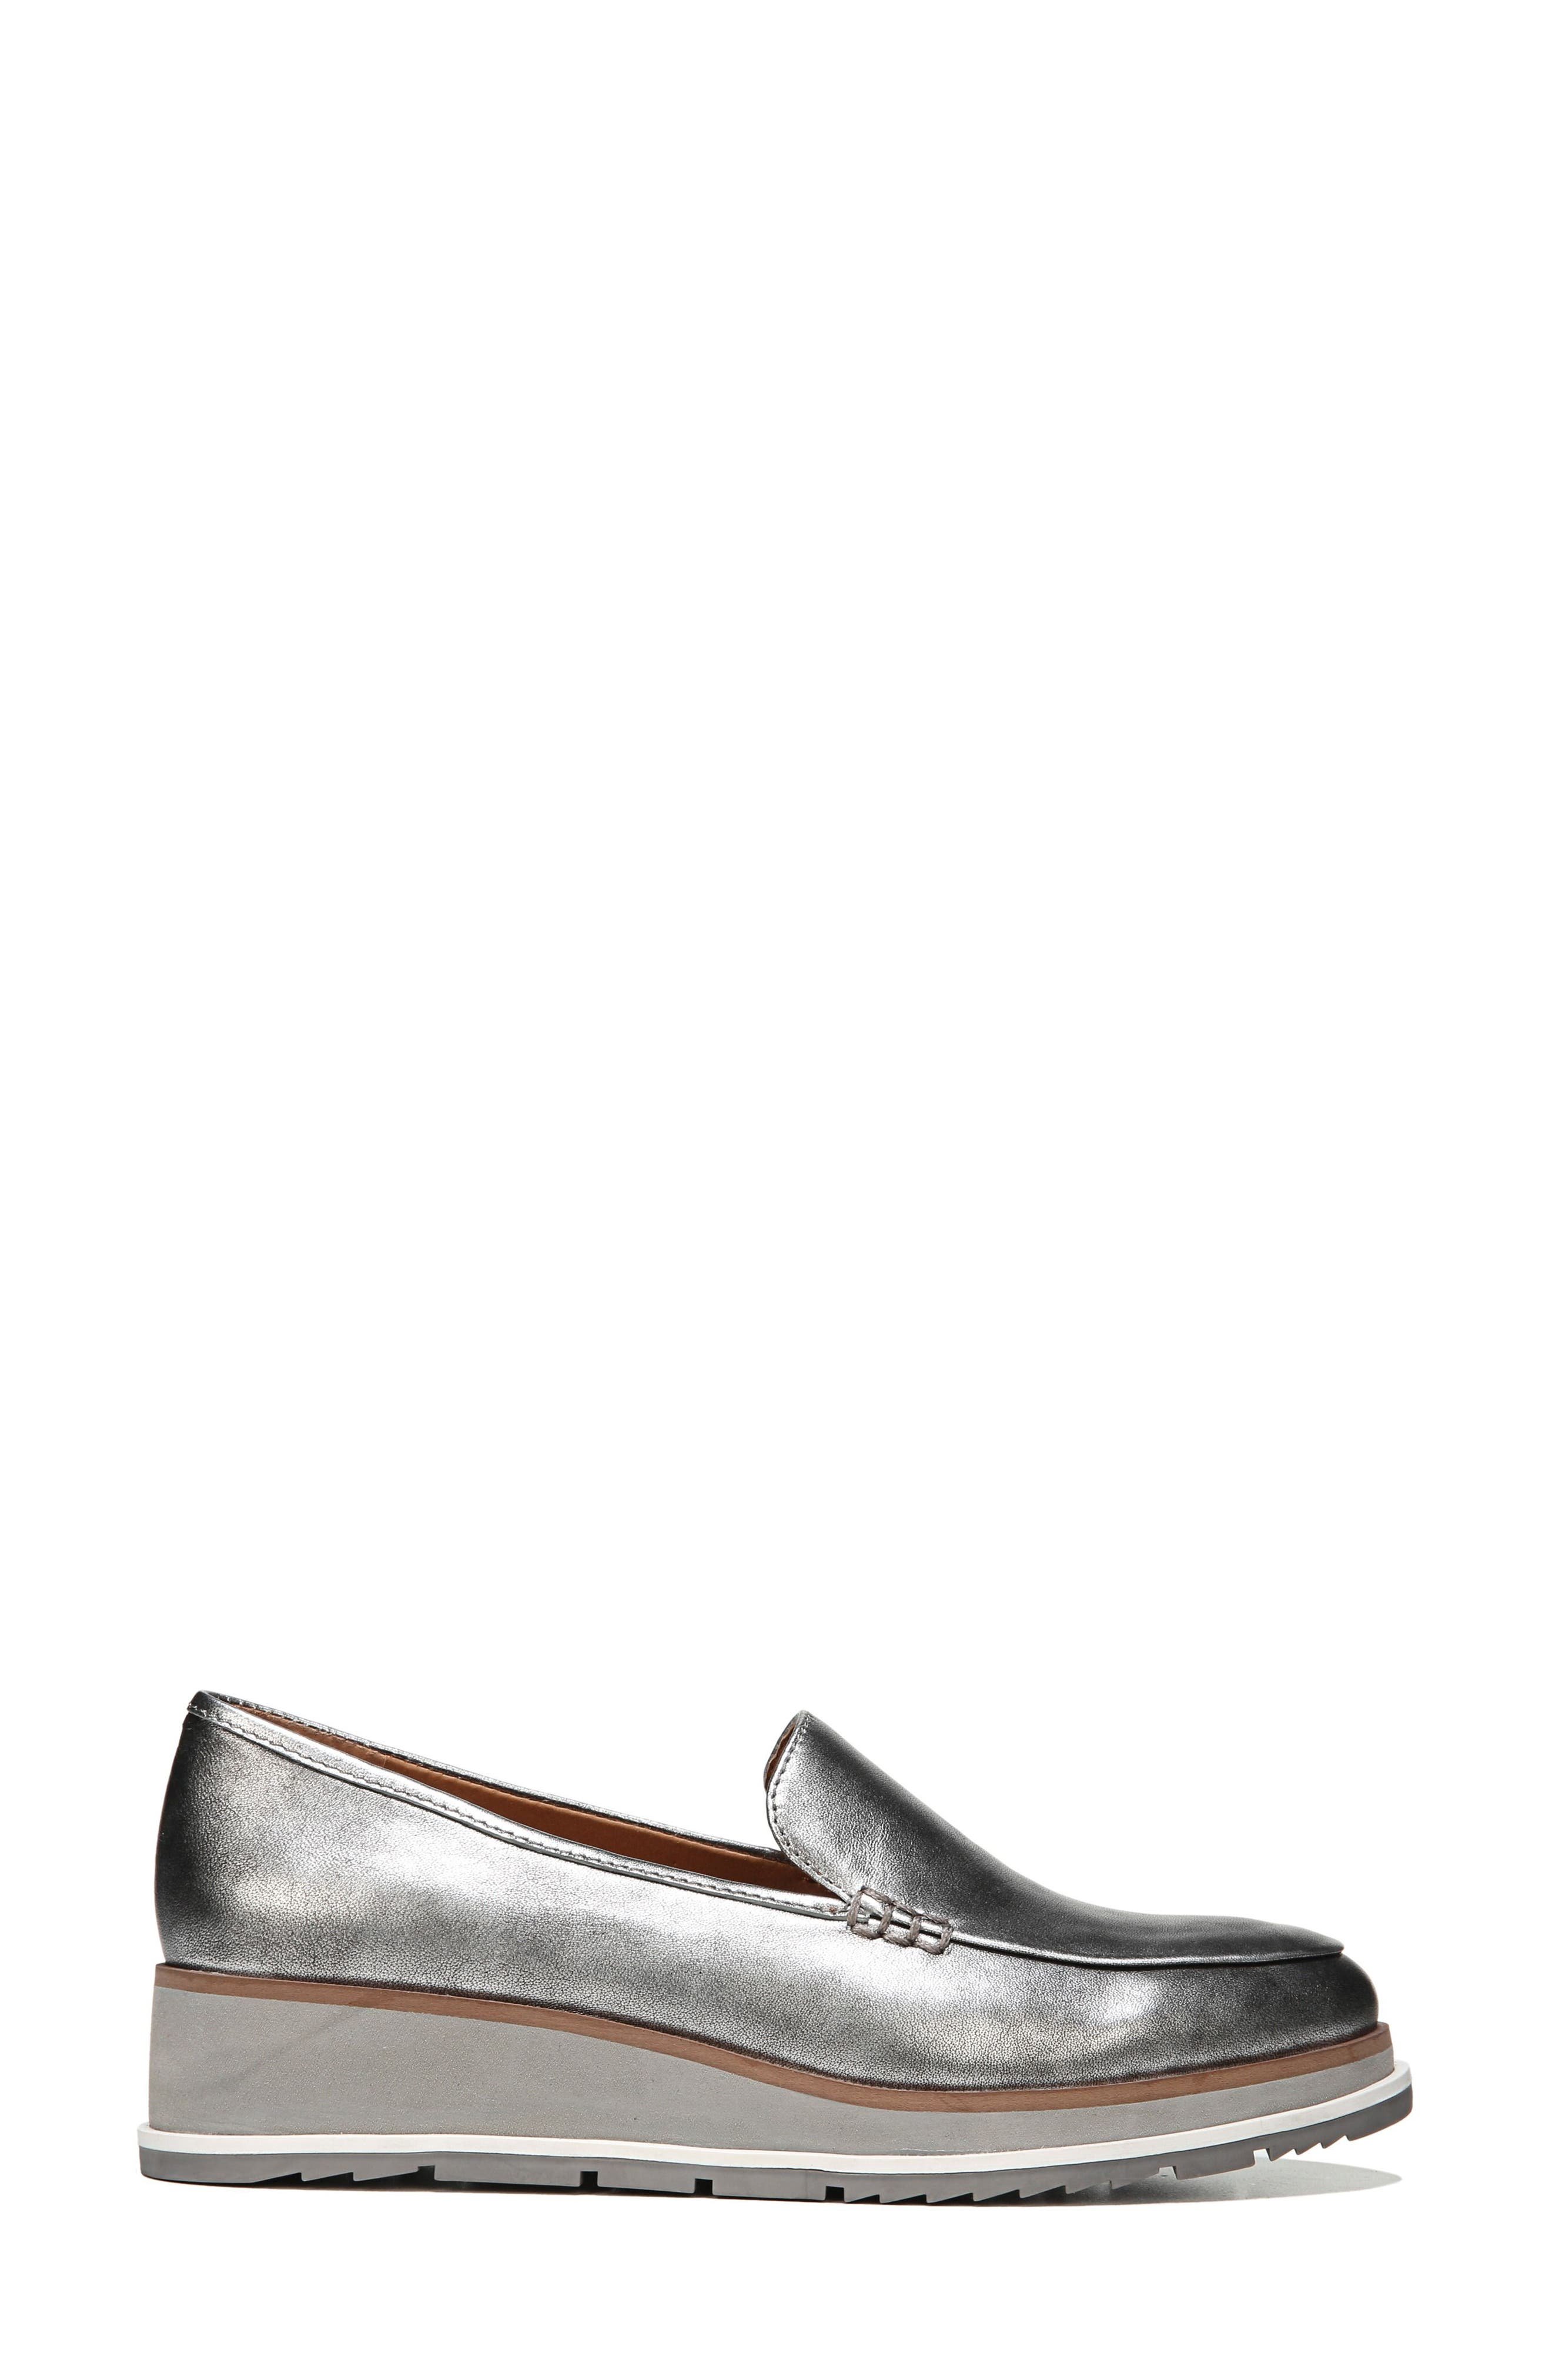 Alternate Image 2  - SARTO by Franco Sarto Ayers Loafer Flat (Women)